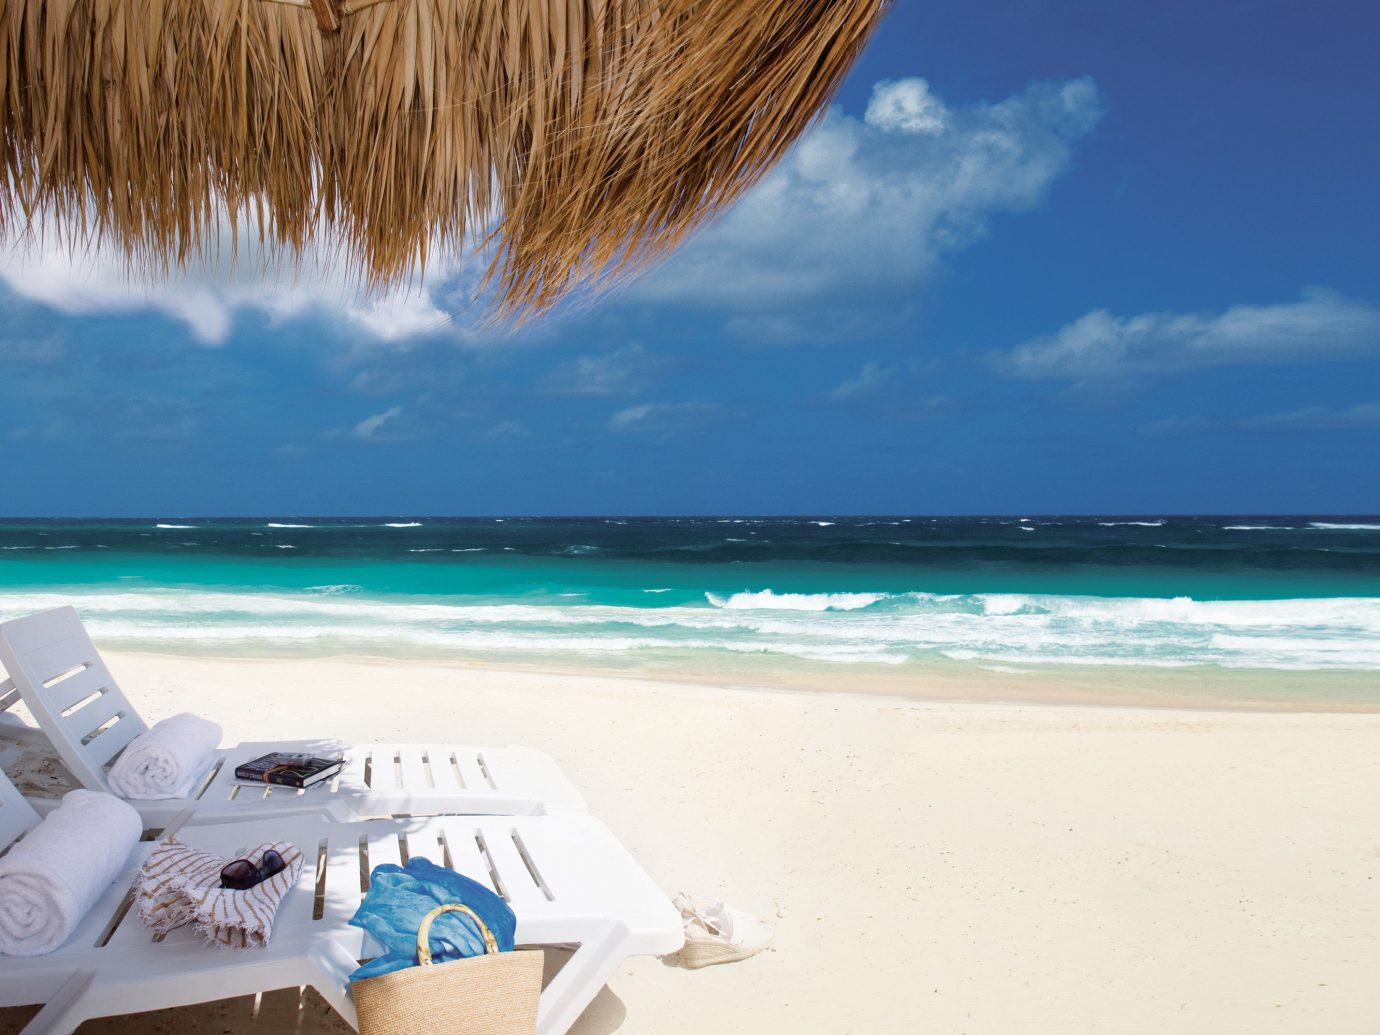 Beach Beachfront Hotels Living Lounge Ocean Style + Design Trip Ideas sky outdoor water shore Sea caribbean body of water vacation Coast sand Nature wind wave cape Lagoon bay Island wave sandy